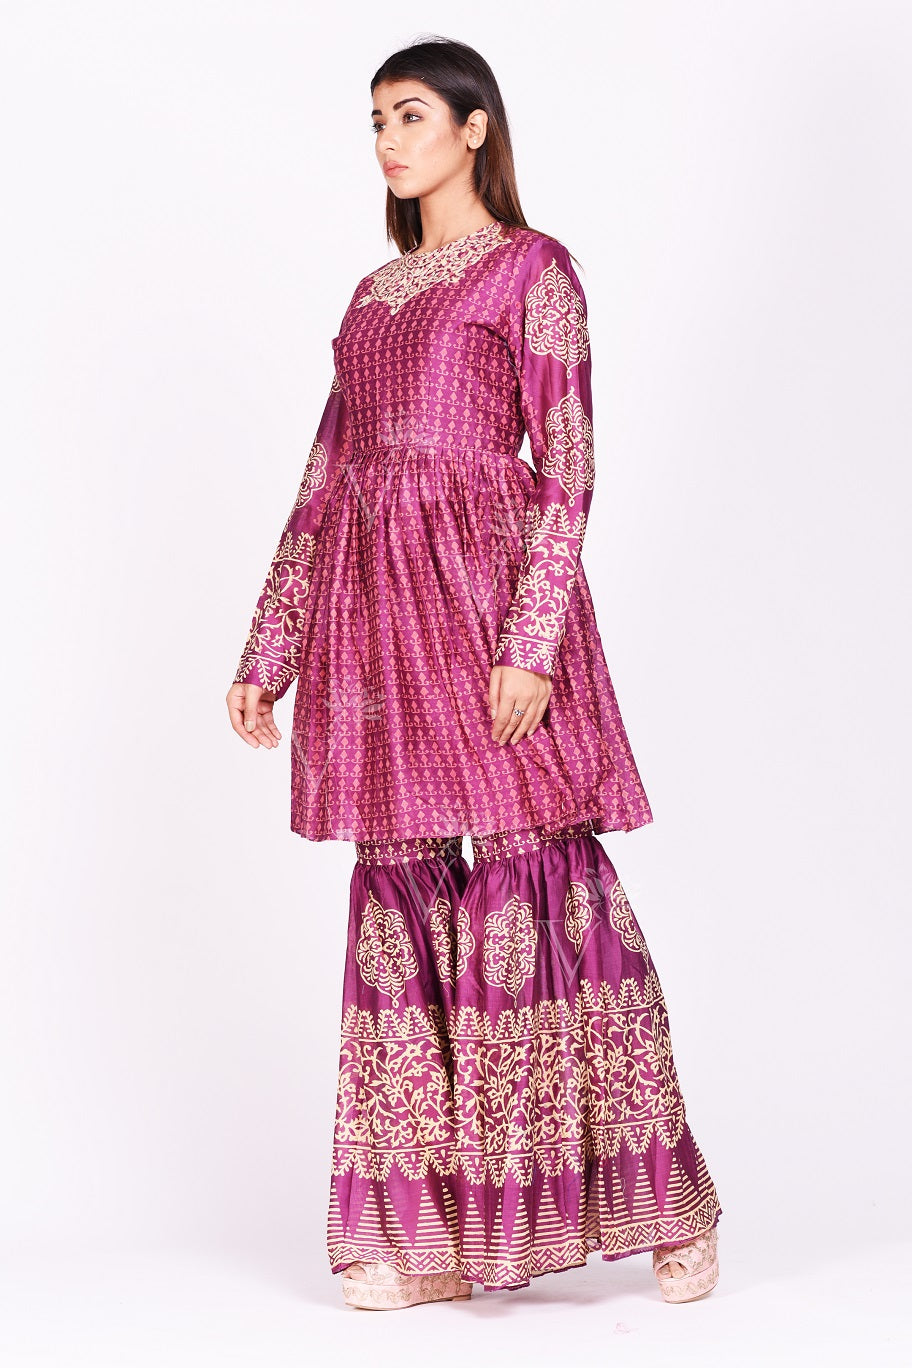 Buy contemporary magenta printed silk sharara set online in USA. Make a stunning fashion statement at weddings and special occasions with an exquisite collection of designer Anarkali suits, designer lehengas, Indian designer dresses from Pure Elegance Indian fashion store in USA. -side